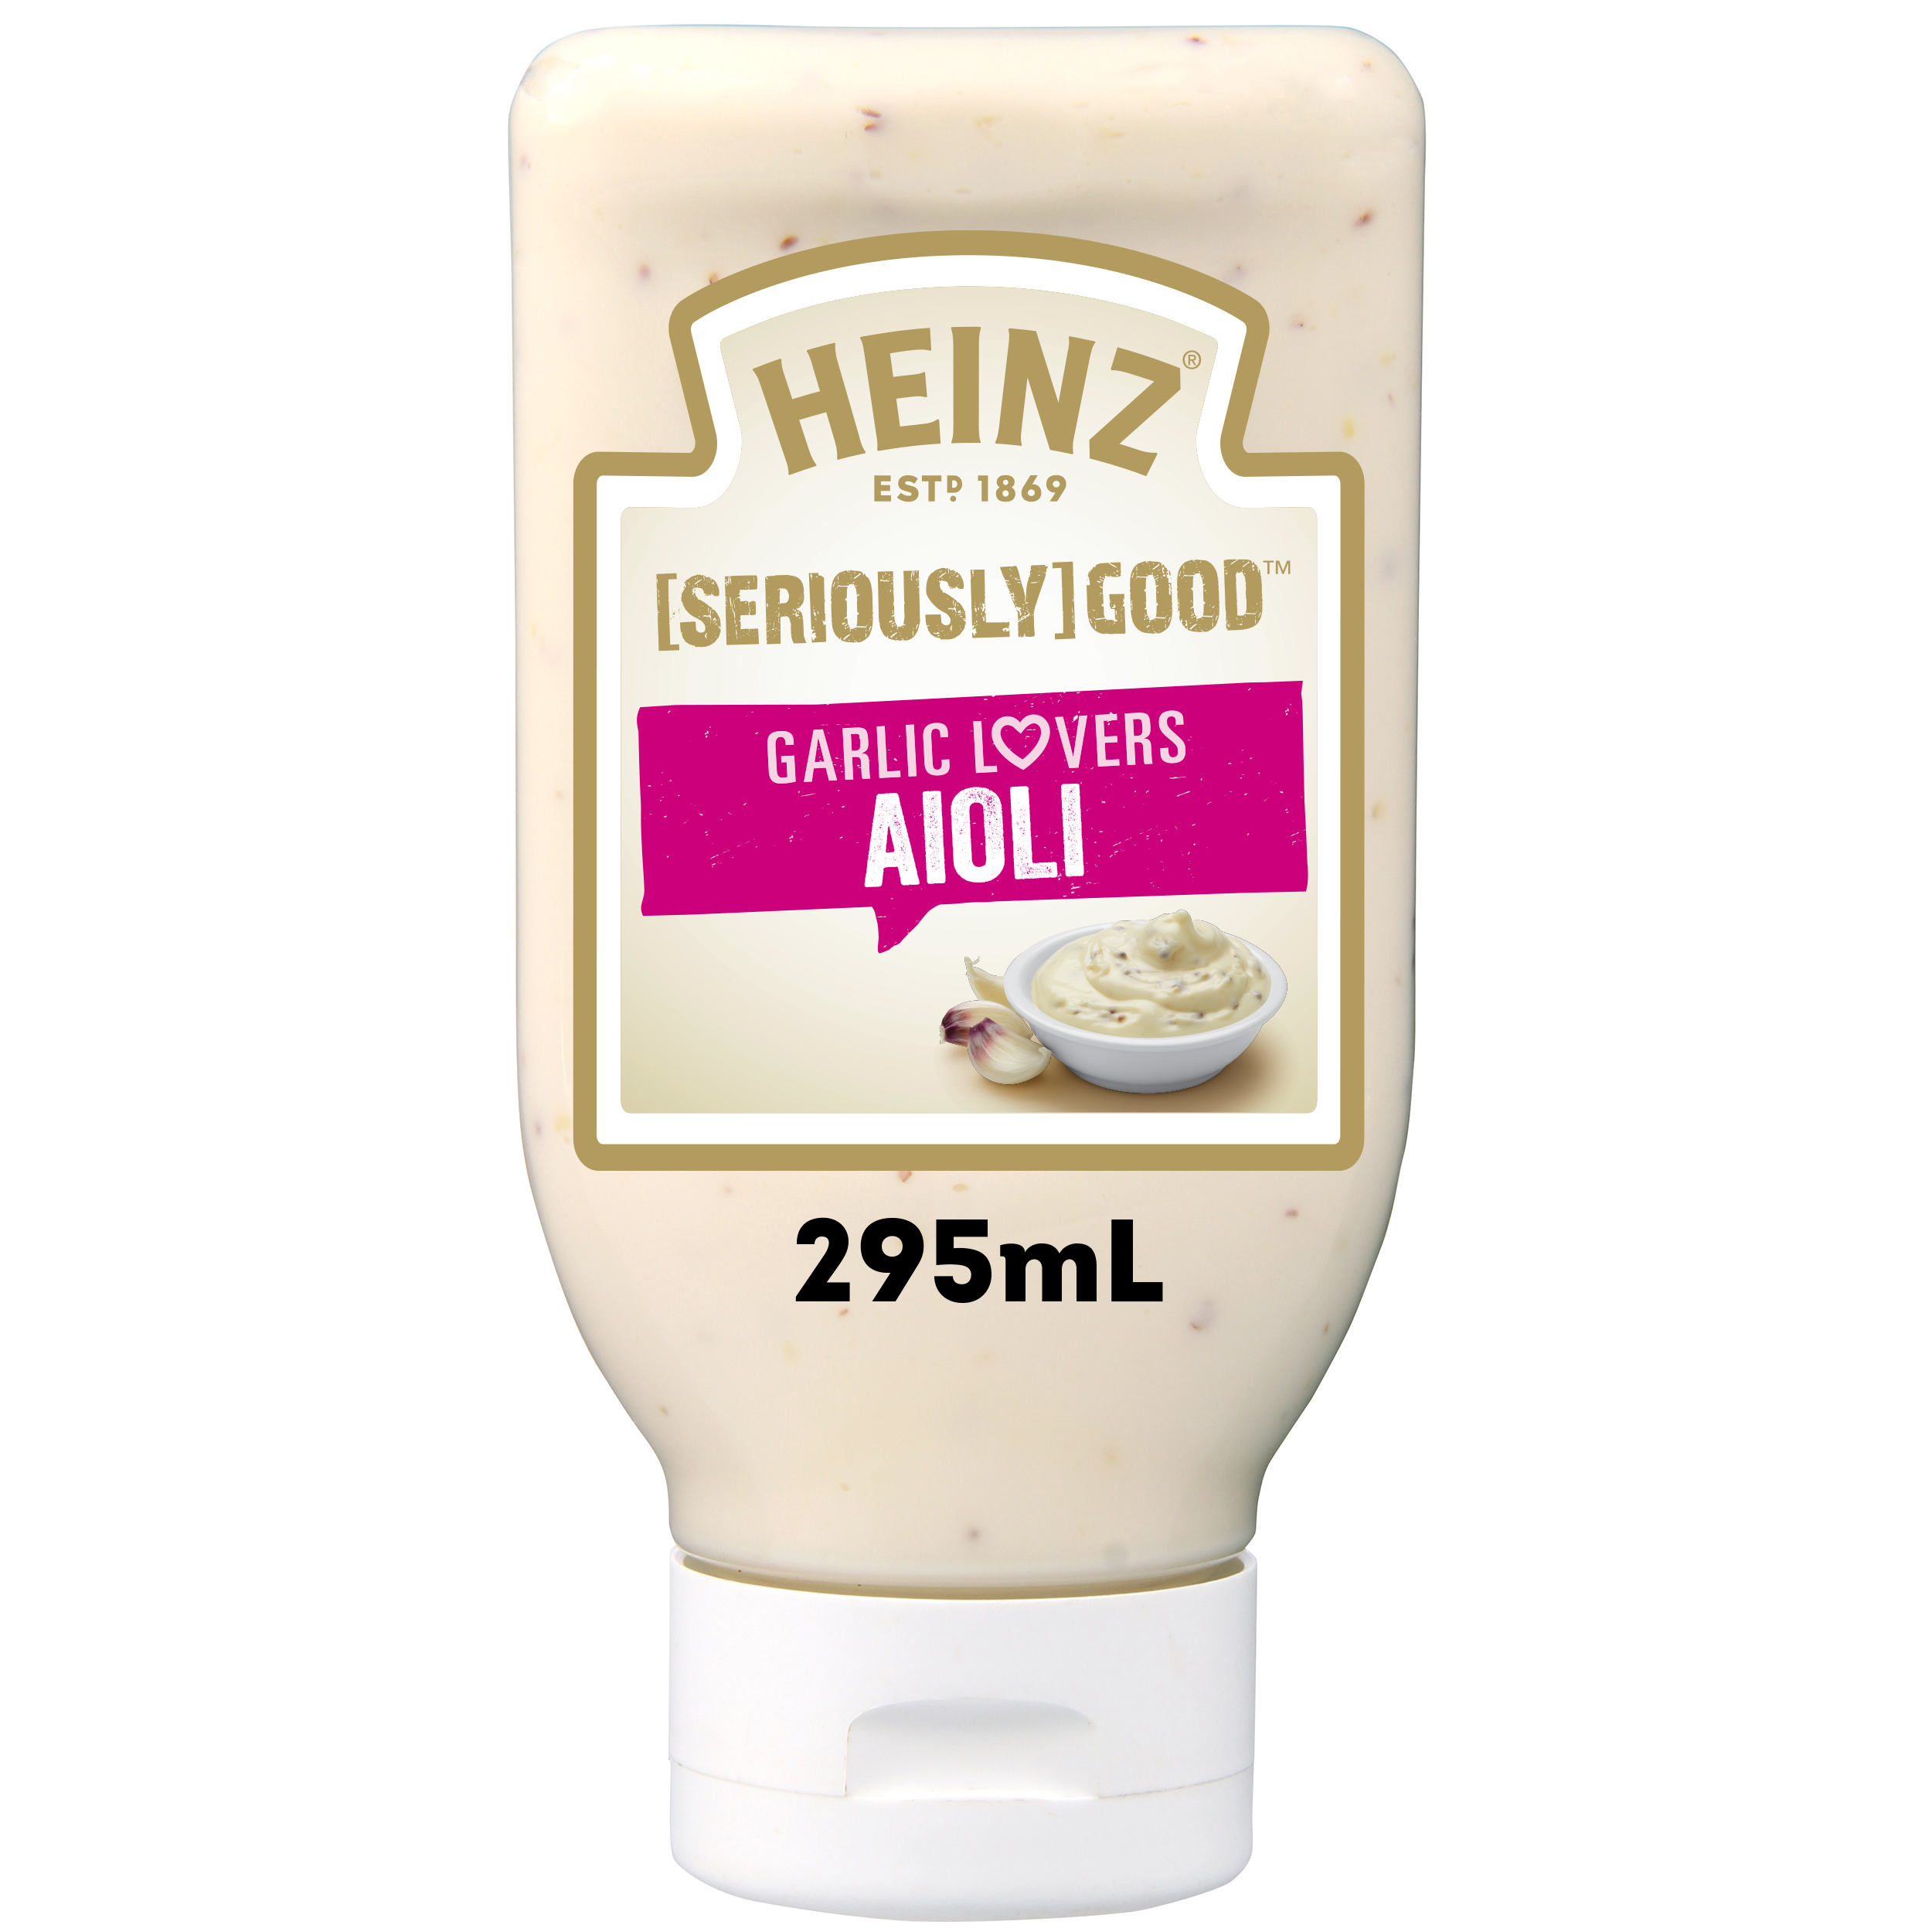 Photograph of 1 x 295mL Heinz® Seriously Good Garlic Lovers Aioli product